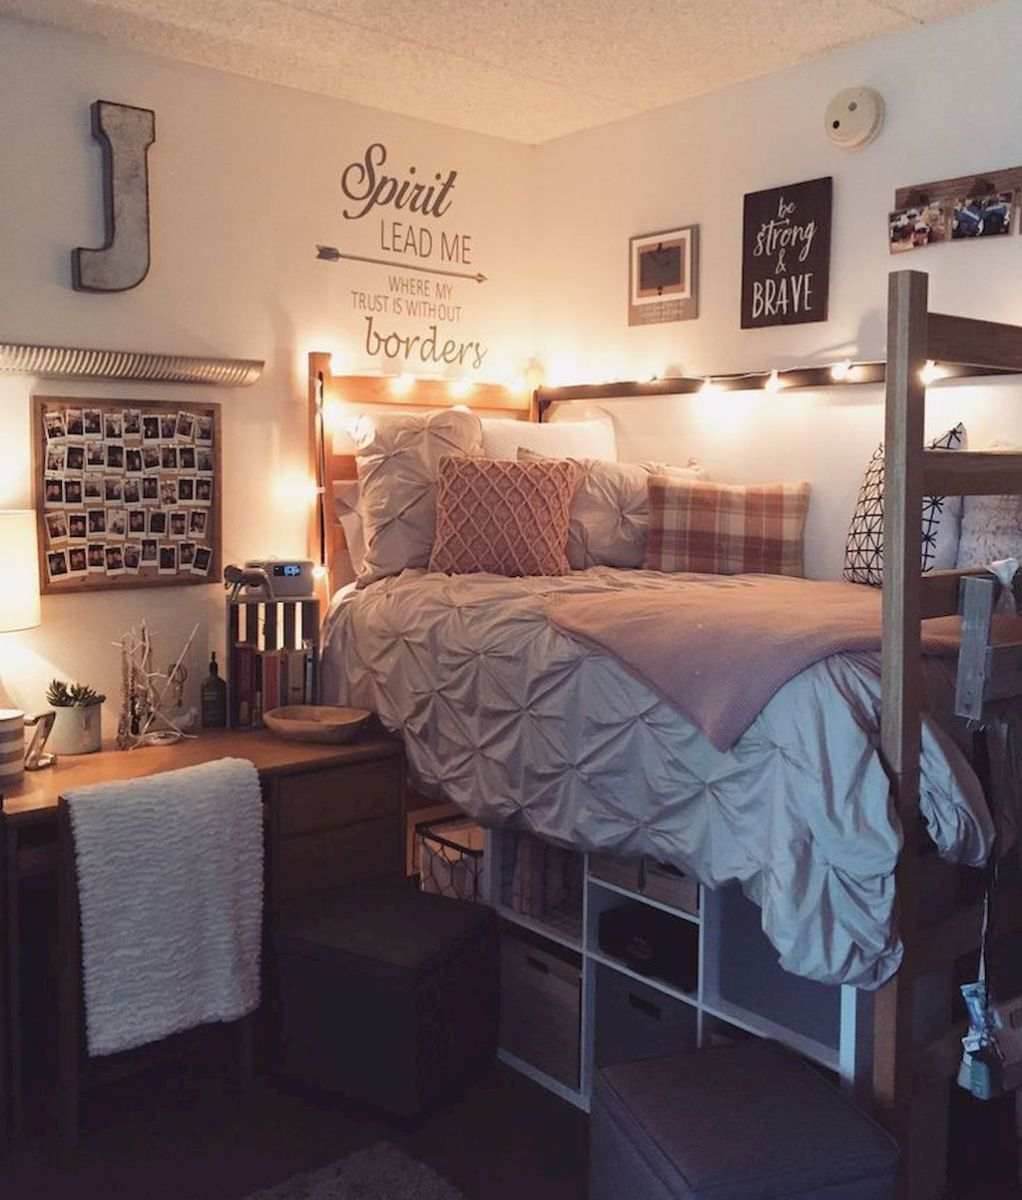 Budget Slaapkamer Inrichten 15 Creative Dorm Room Decor Ideas On A Budget Slaapkamer